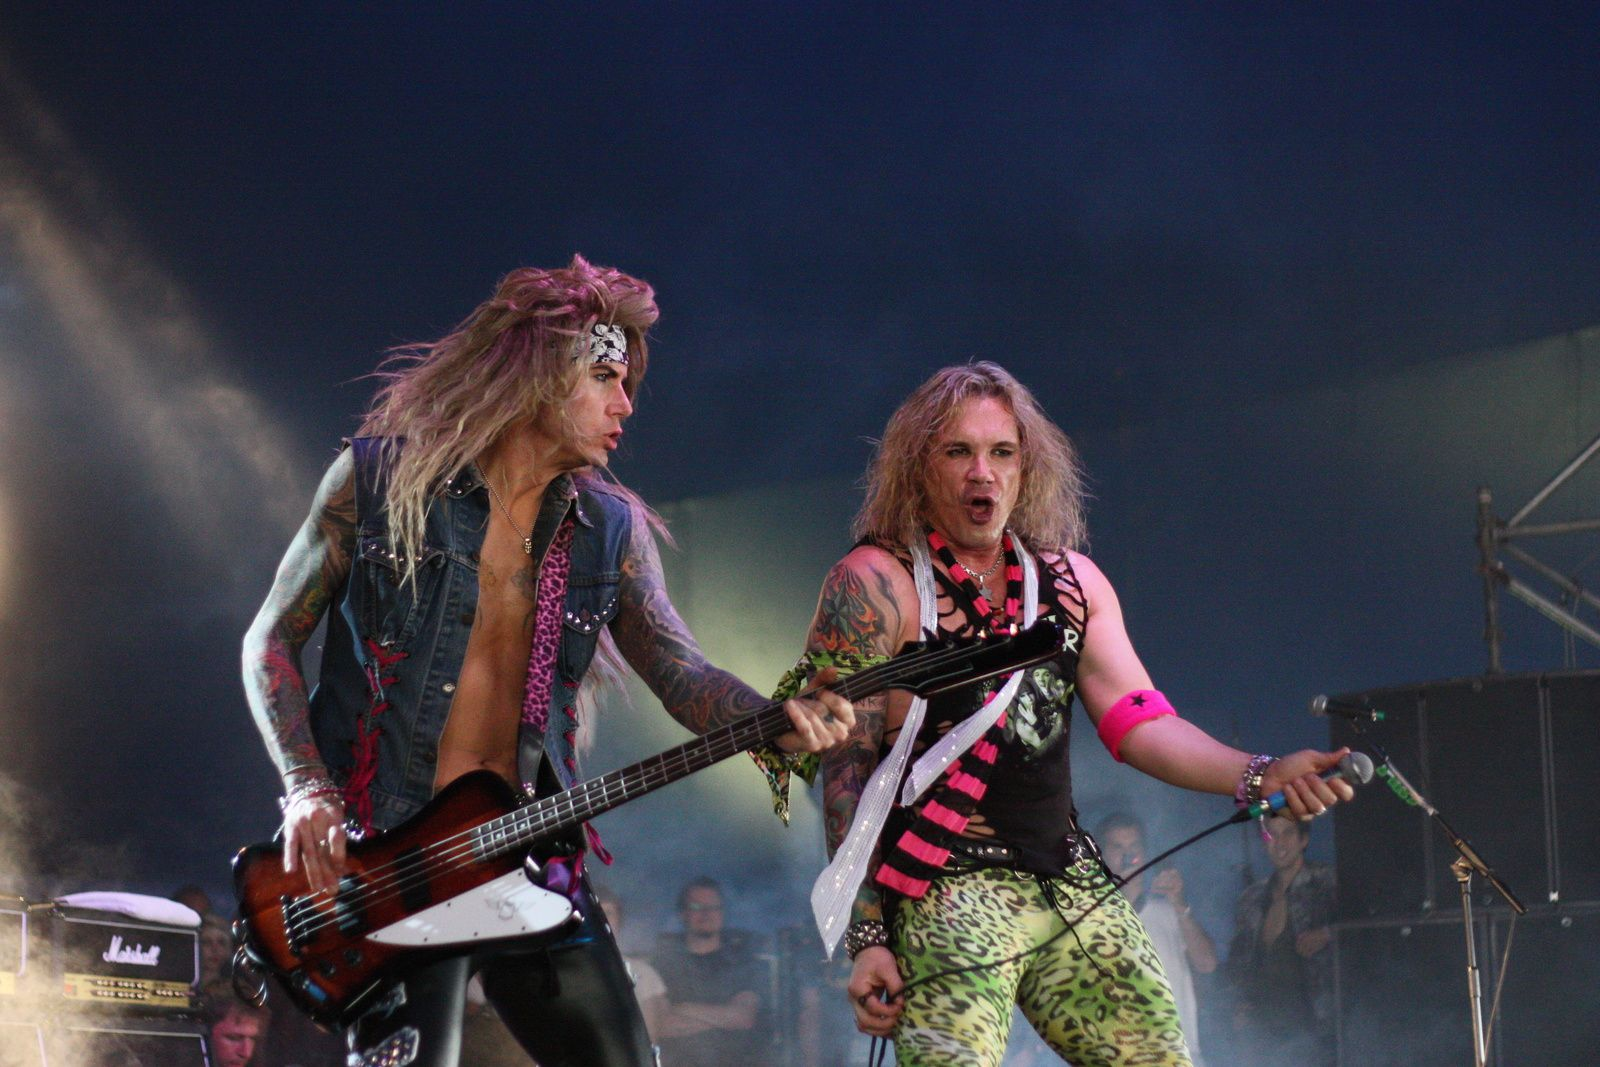 Michael Starr - 2009 - Steel Panther - credit: Glen Folder/flickr